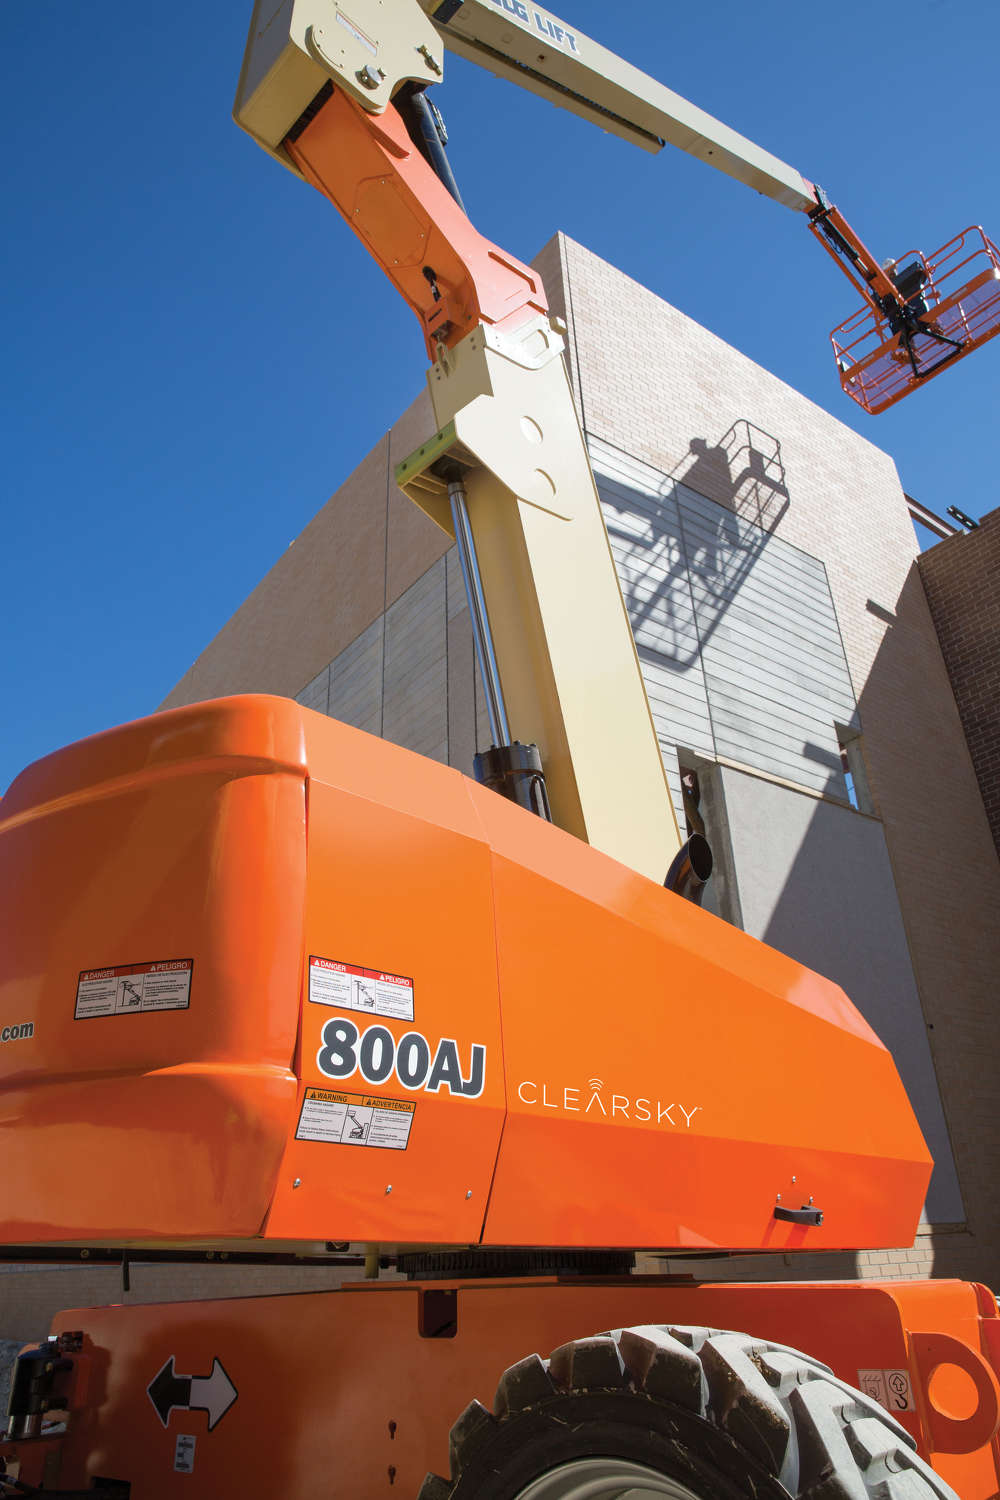 ClearSky is offered as a factory-installed option for new JLG machines or as an aftermarket installation kit to retrofit JLG products in the field.